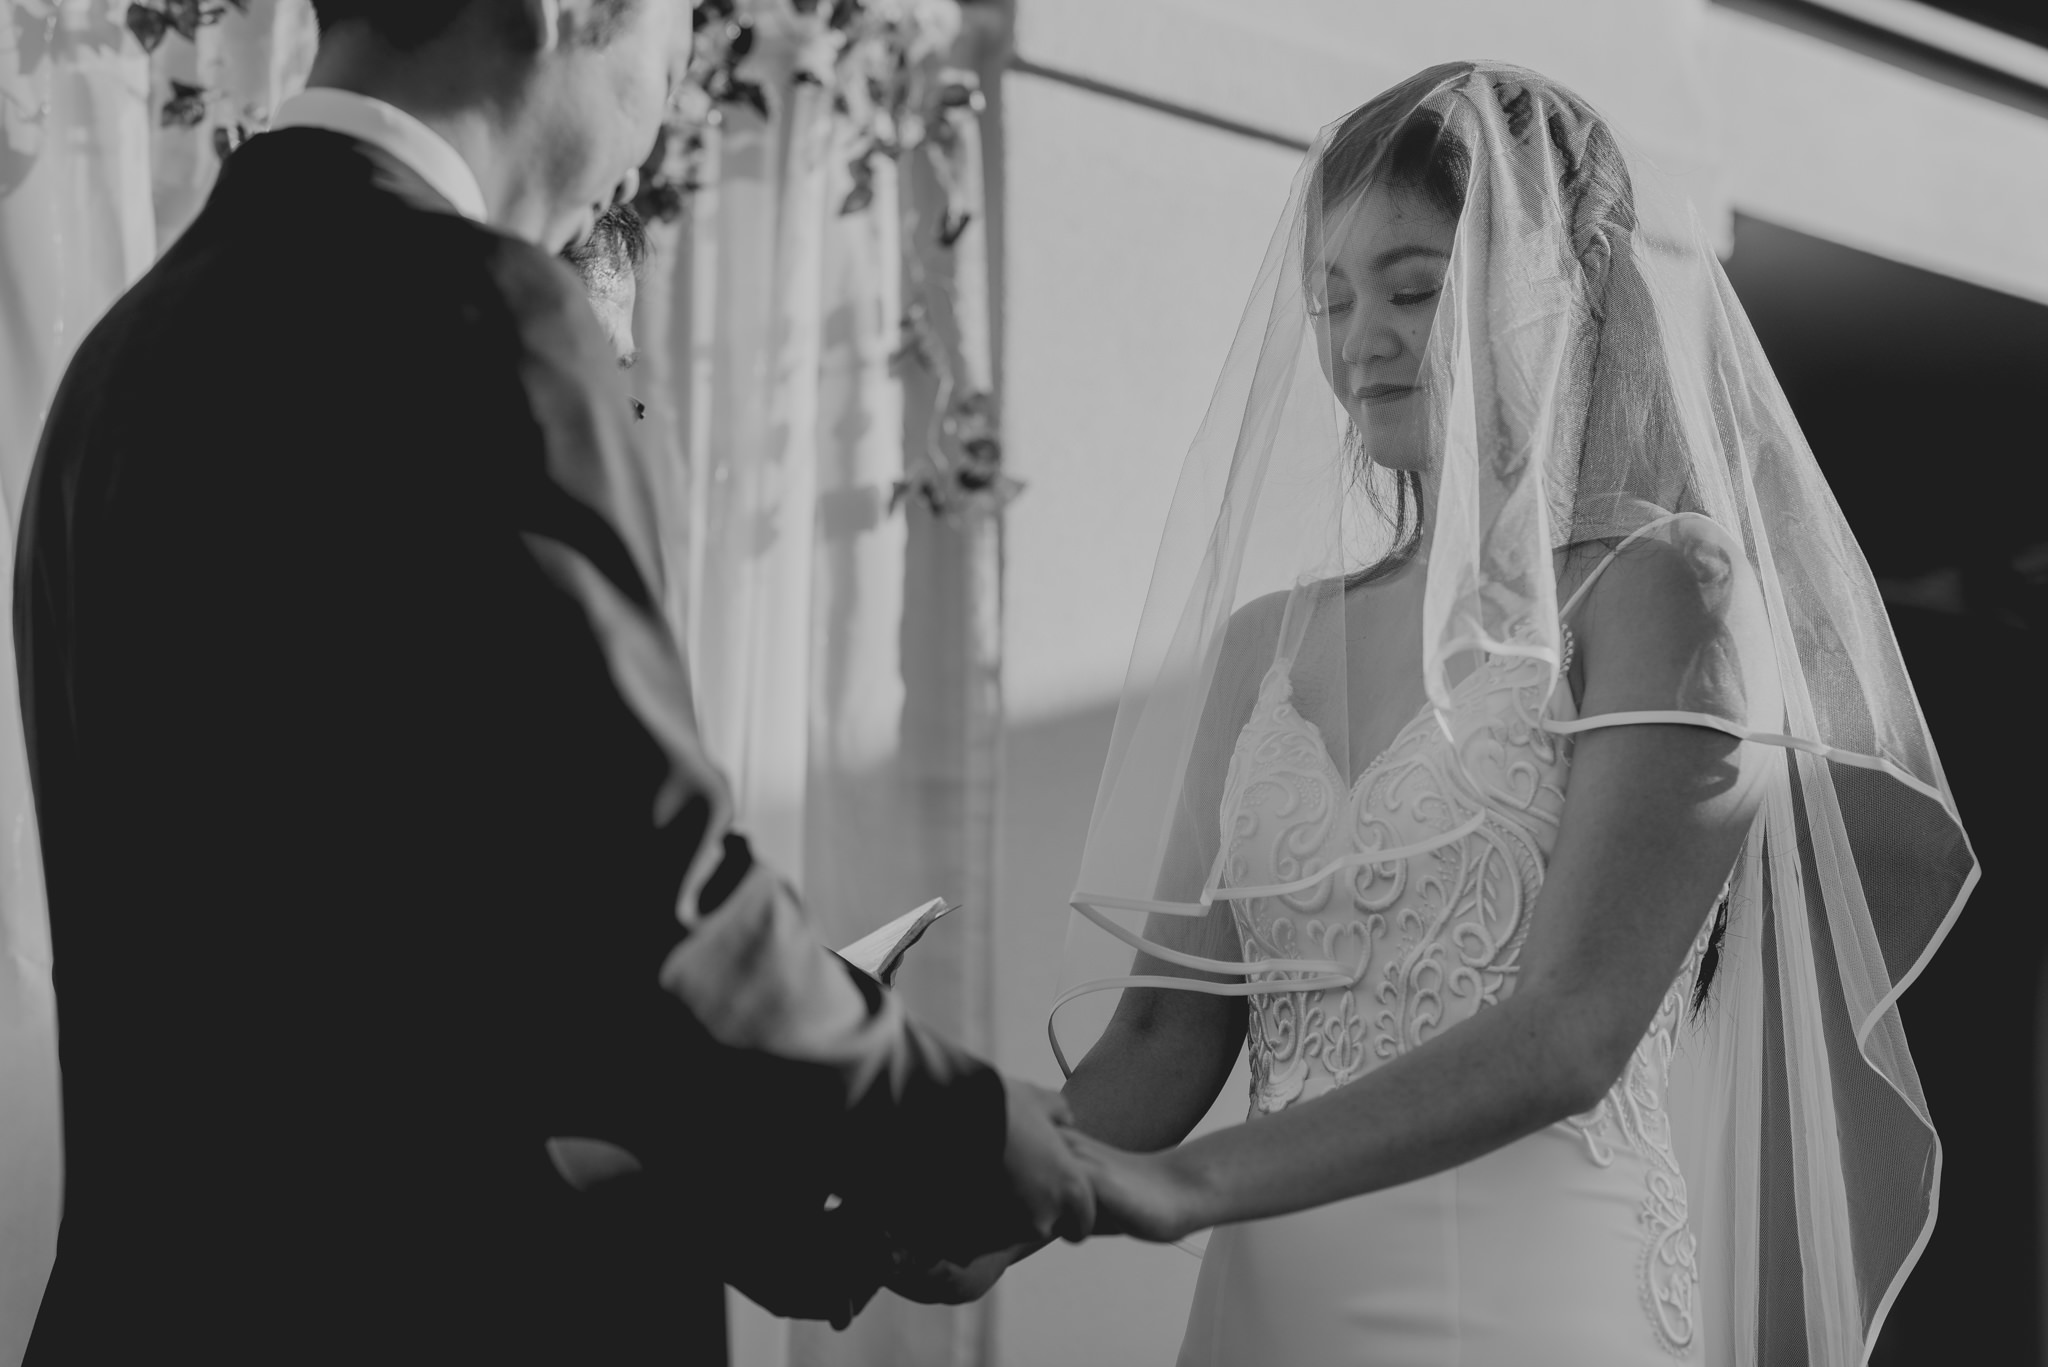 A bride closes her eyes as she holds hands with her groom during a wedding ceremony